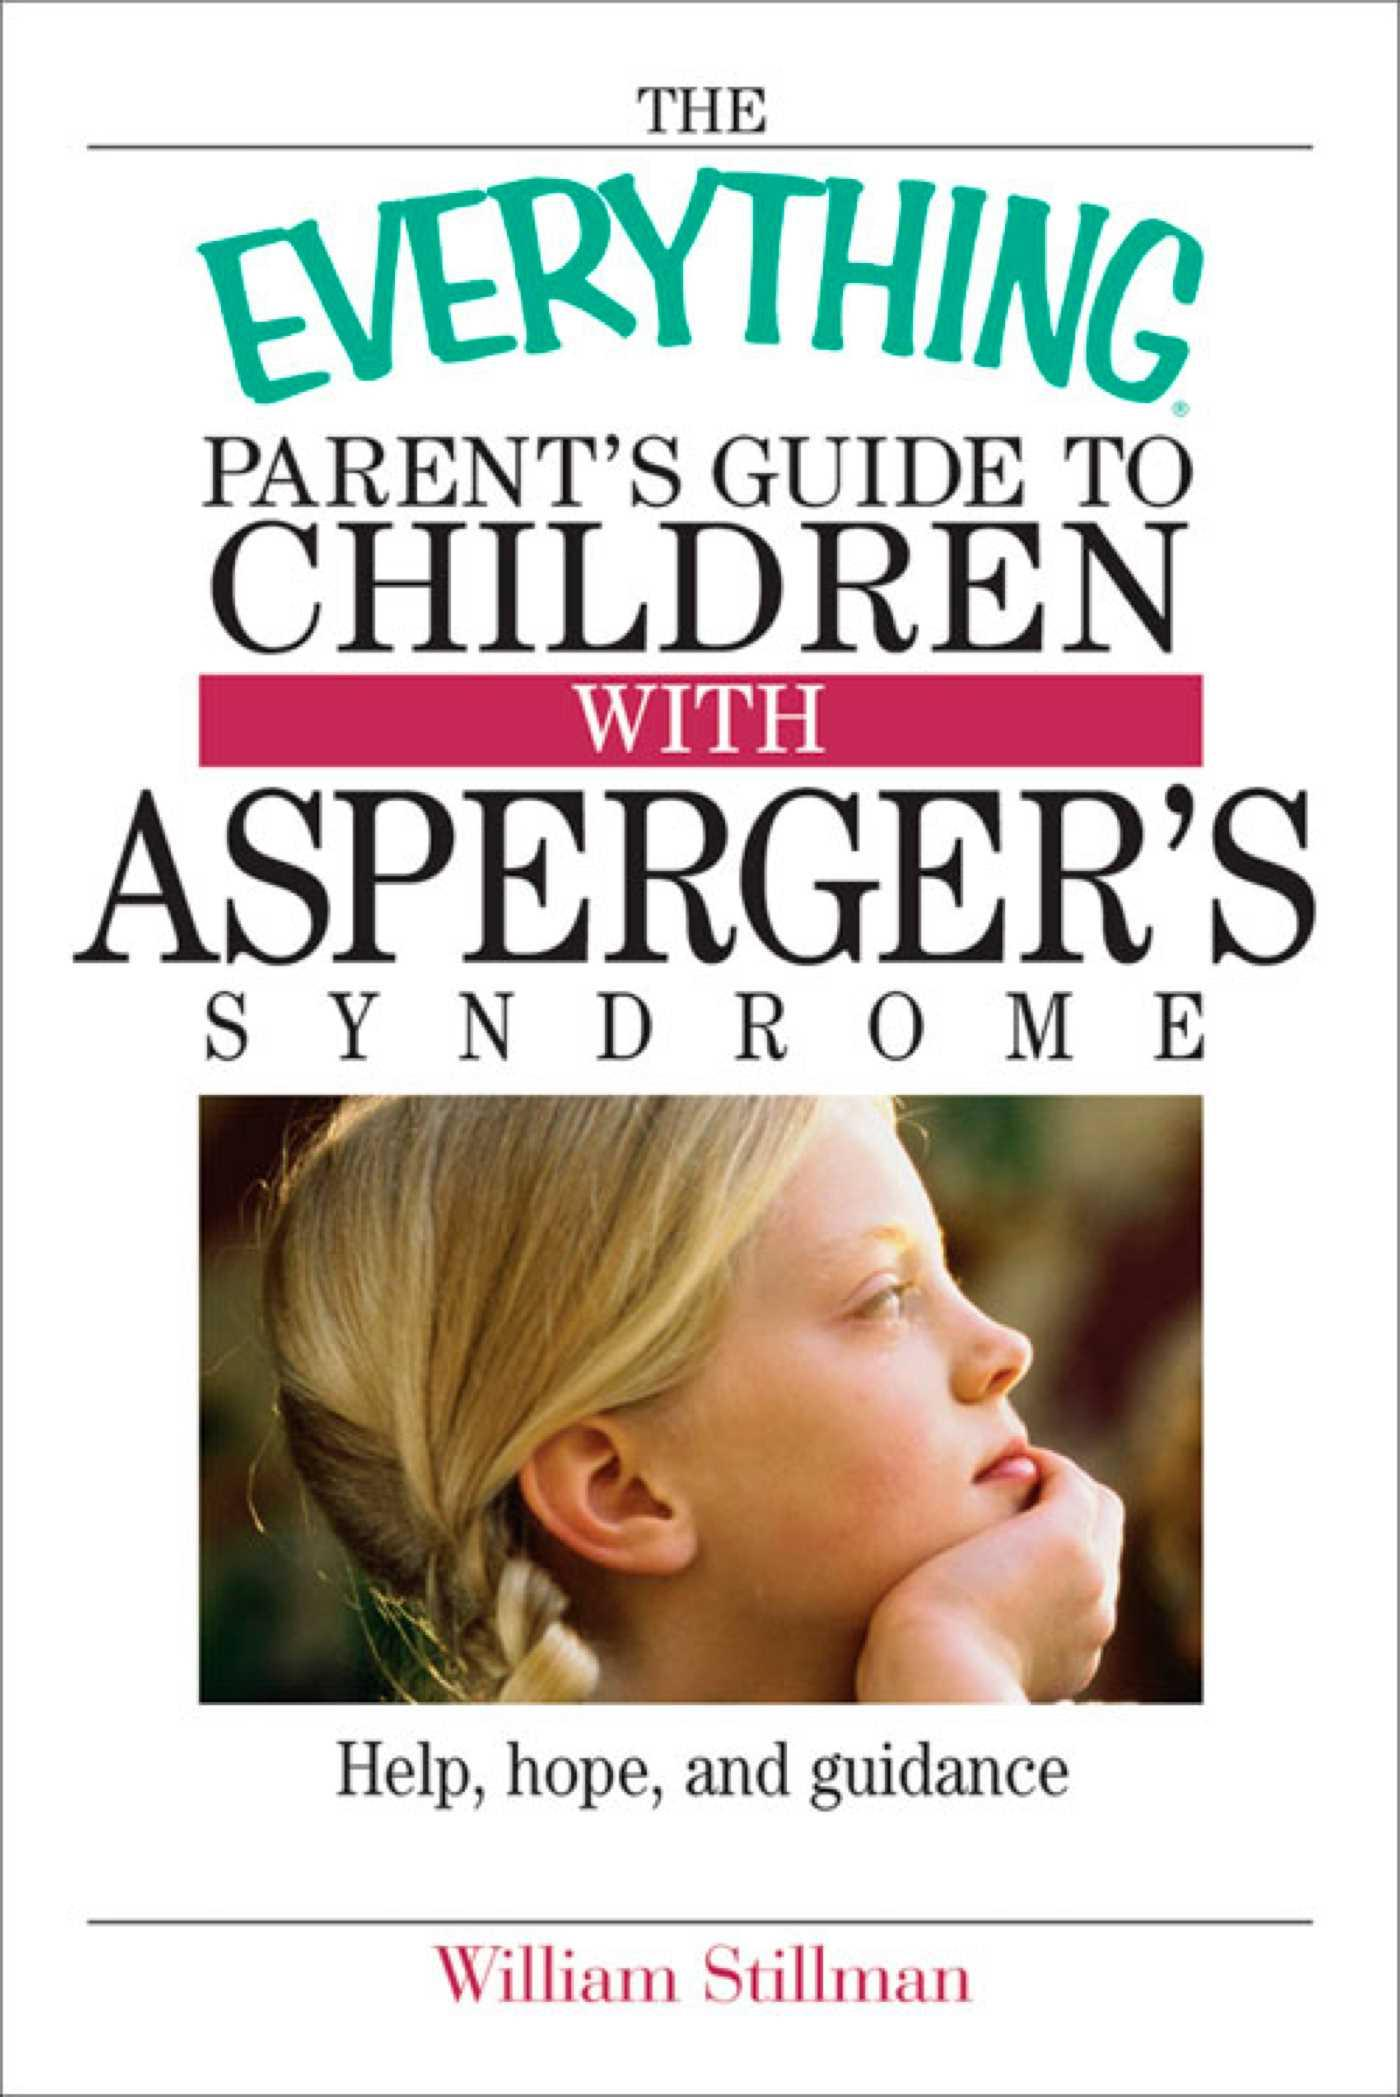 life of a child with aspergers syndrome A blog about living with asperger's syndrome and parenting children with asperger's syndrome life with aspergers pages home about  a child who is toilet trained may regress to the point where they are no longer able to use the toilet similarly, a child who has reasonable language development for their age may regress to a point where.